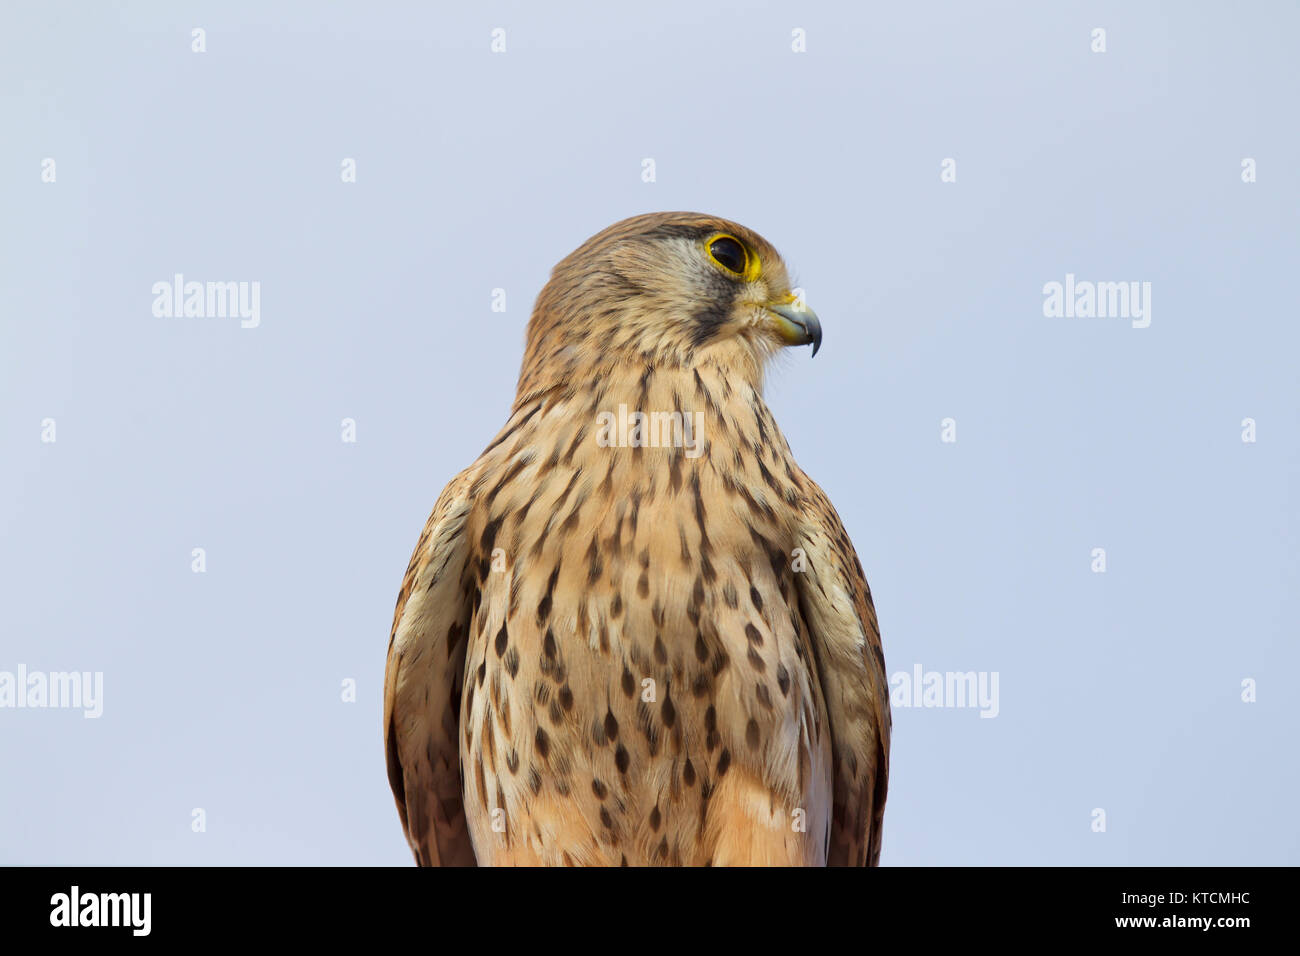 Proud bird of prey falcon family, Cyprus Stock Photo